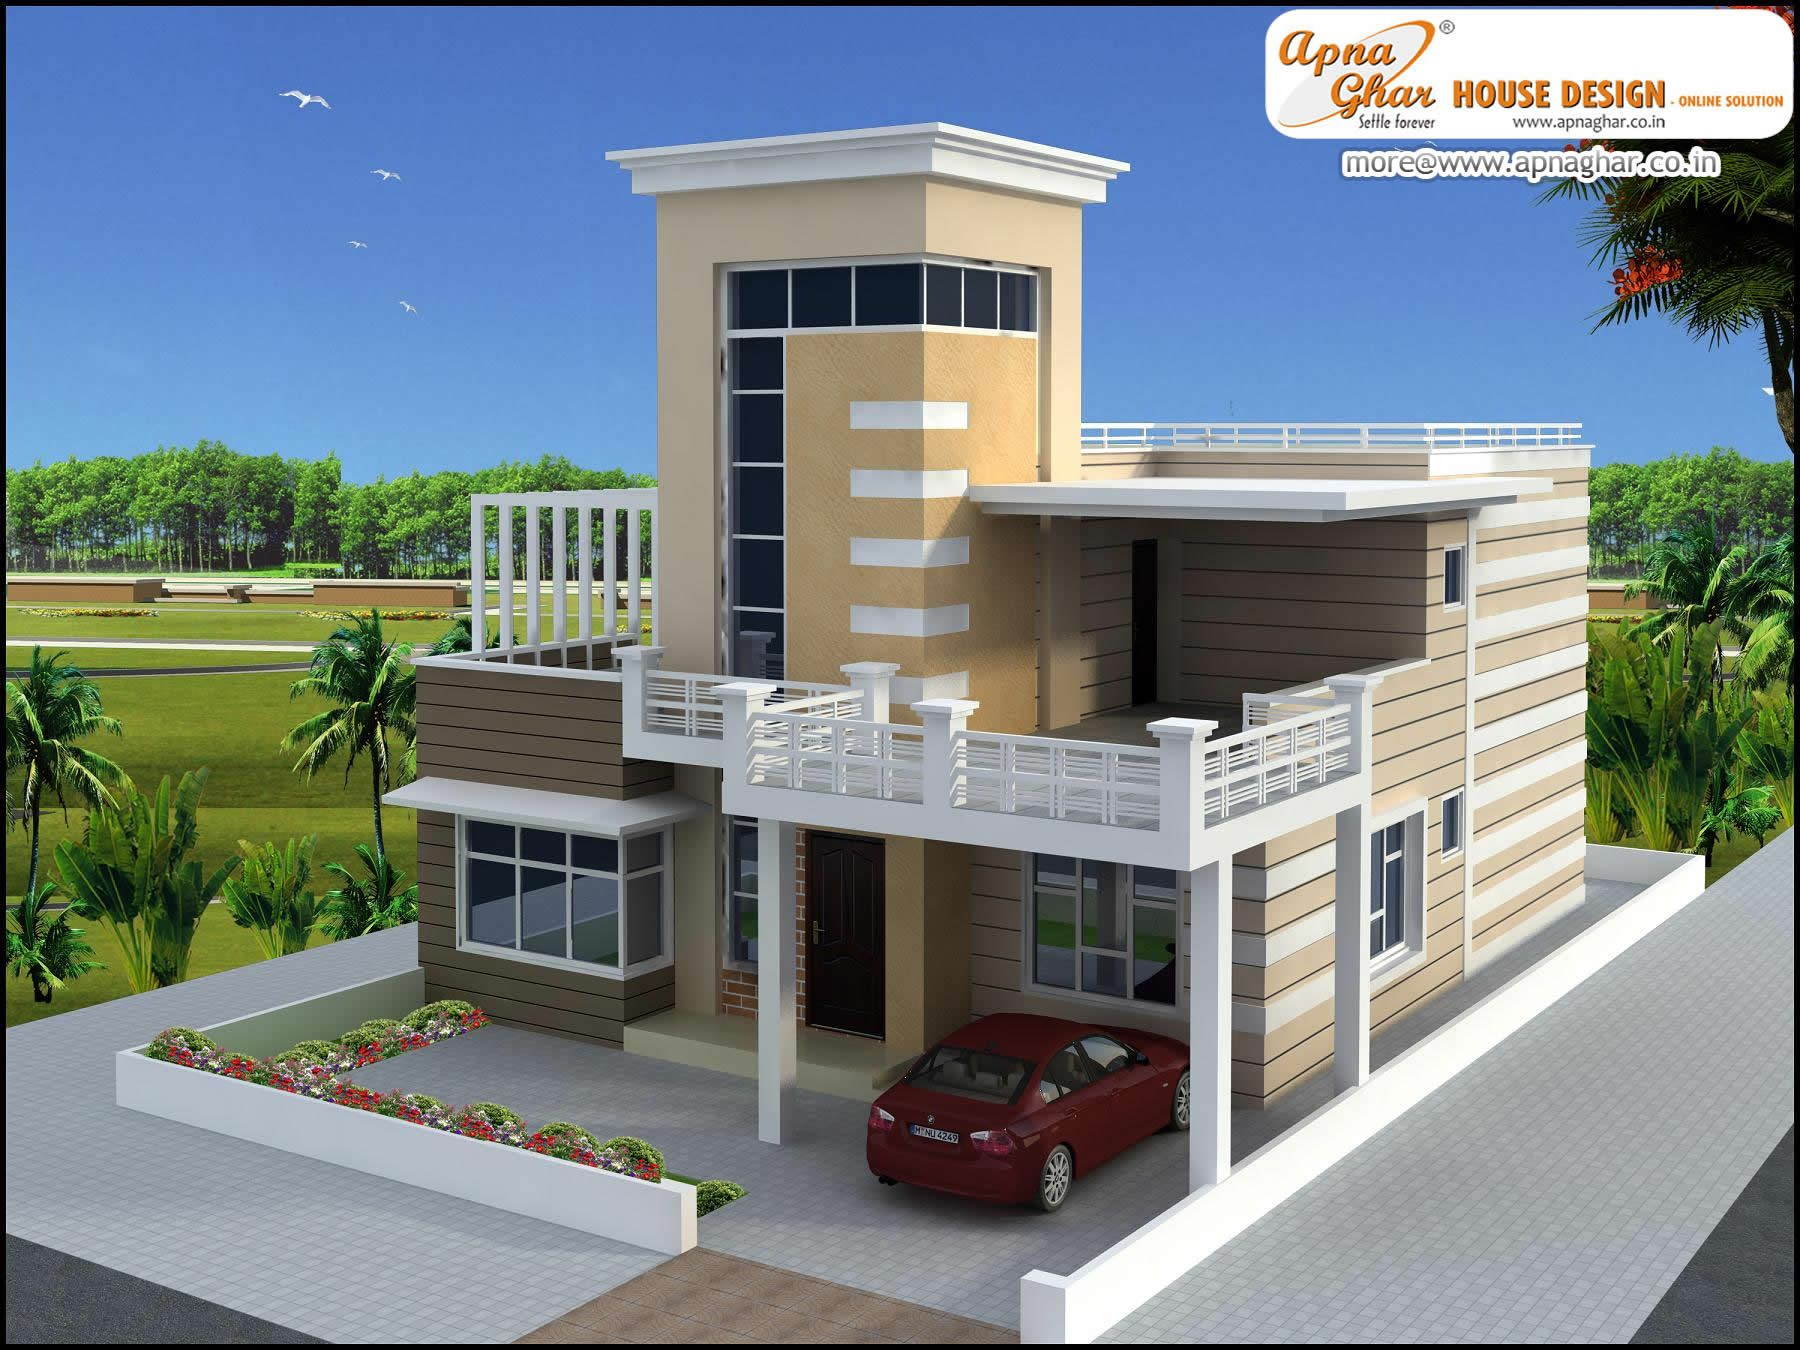 Luxury duplex 2 floors house design area 252m2 21m x Modern house website